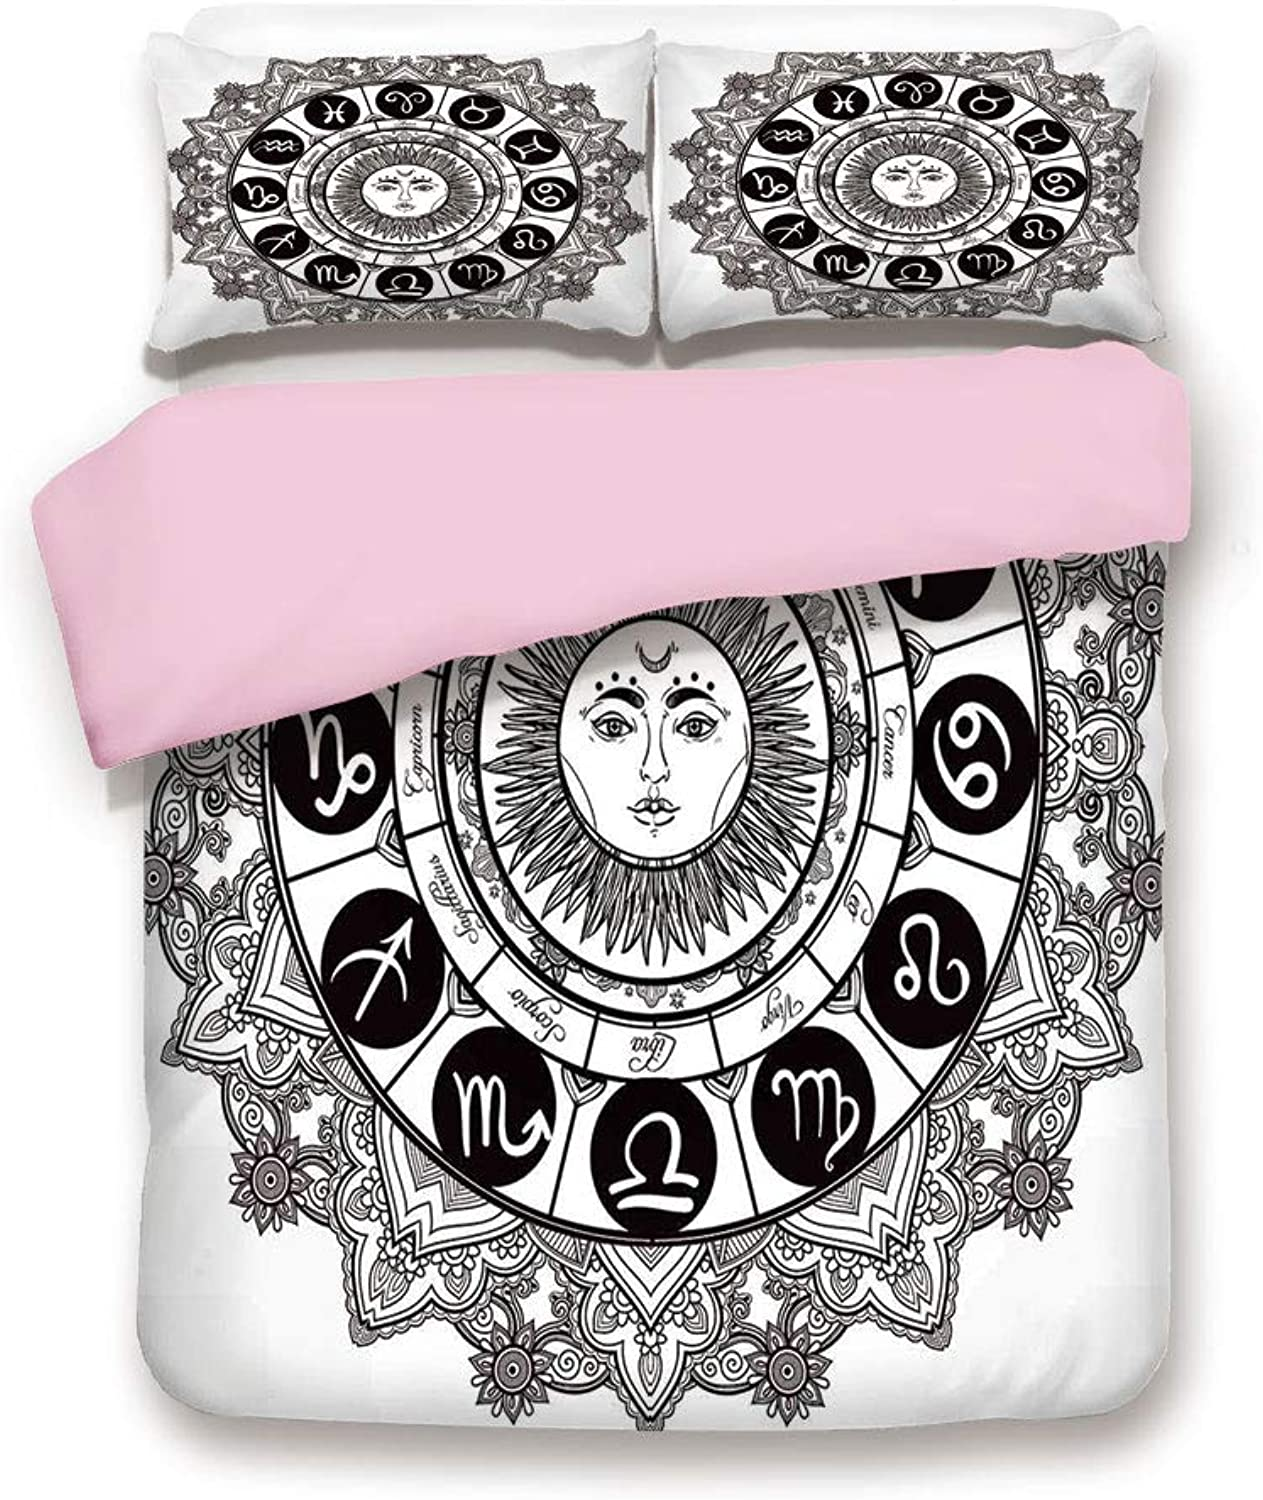 Pink Duvet Cover Set,Full Size,Astrology Houses in Mandala Pattern with Sun in Middle Ethnic Kitsch Artwork,Decorative 3 Piece Bedding Set with 2 Pillow Sham,Best Gift for Girls Women,Black Grey